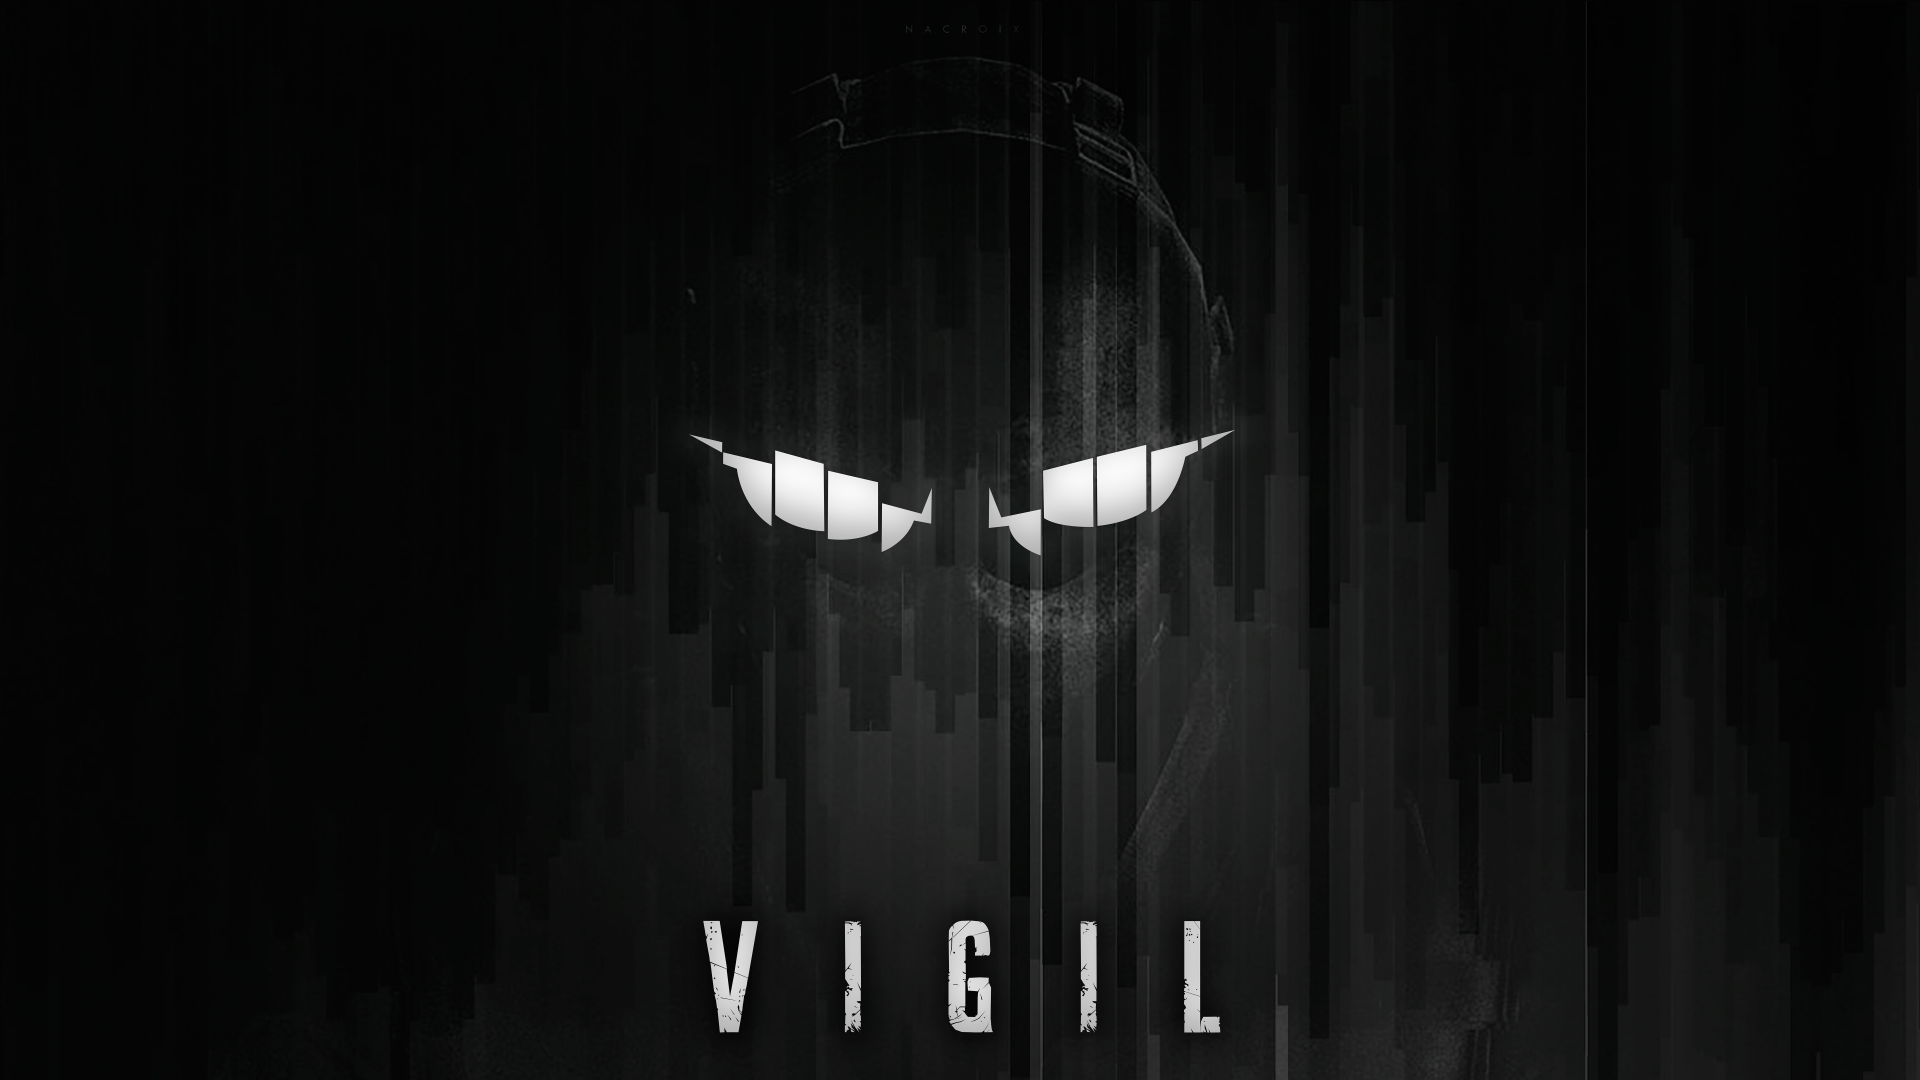 Download Wallpapers Of Vigil Rainbow Six Siege Operator Vigil